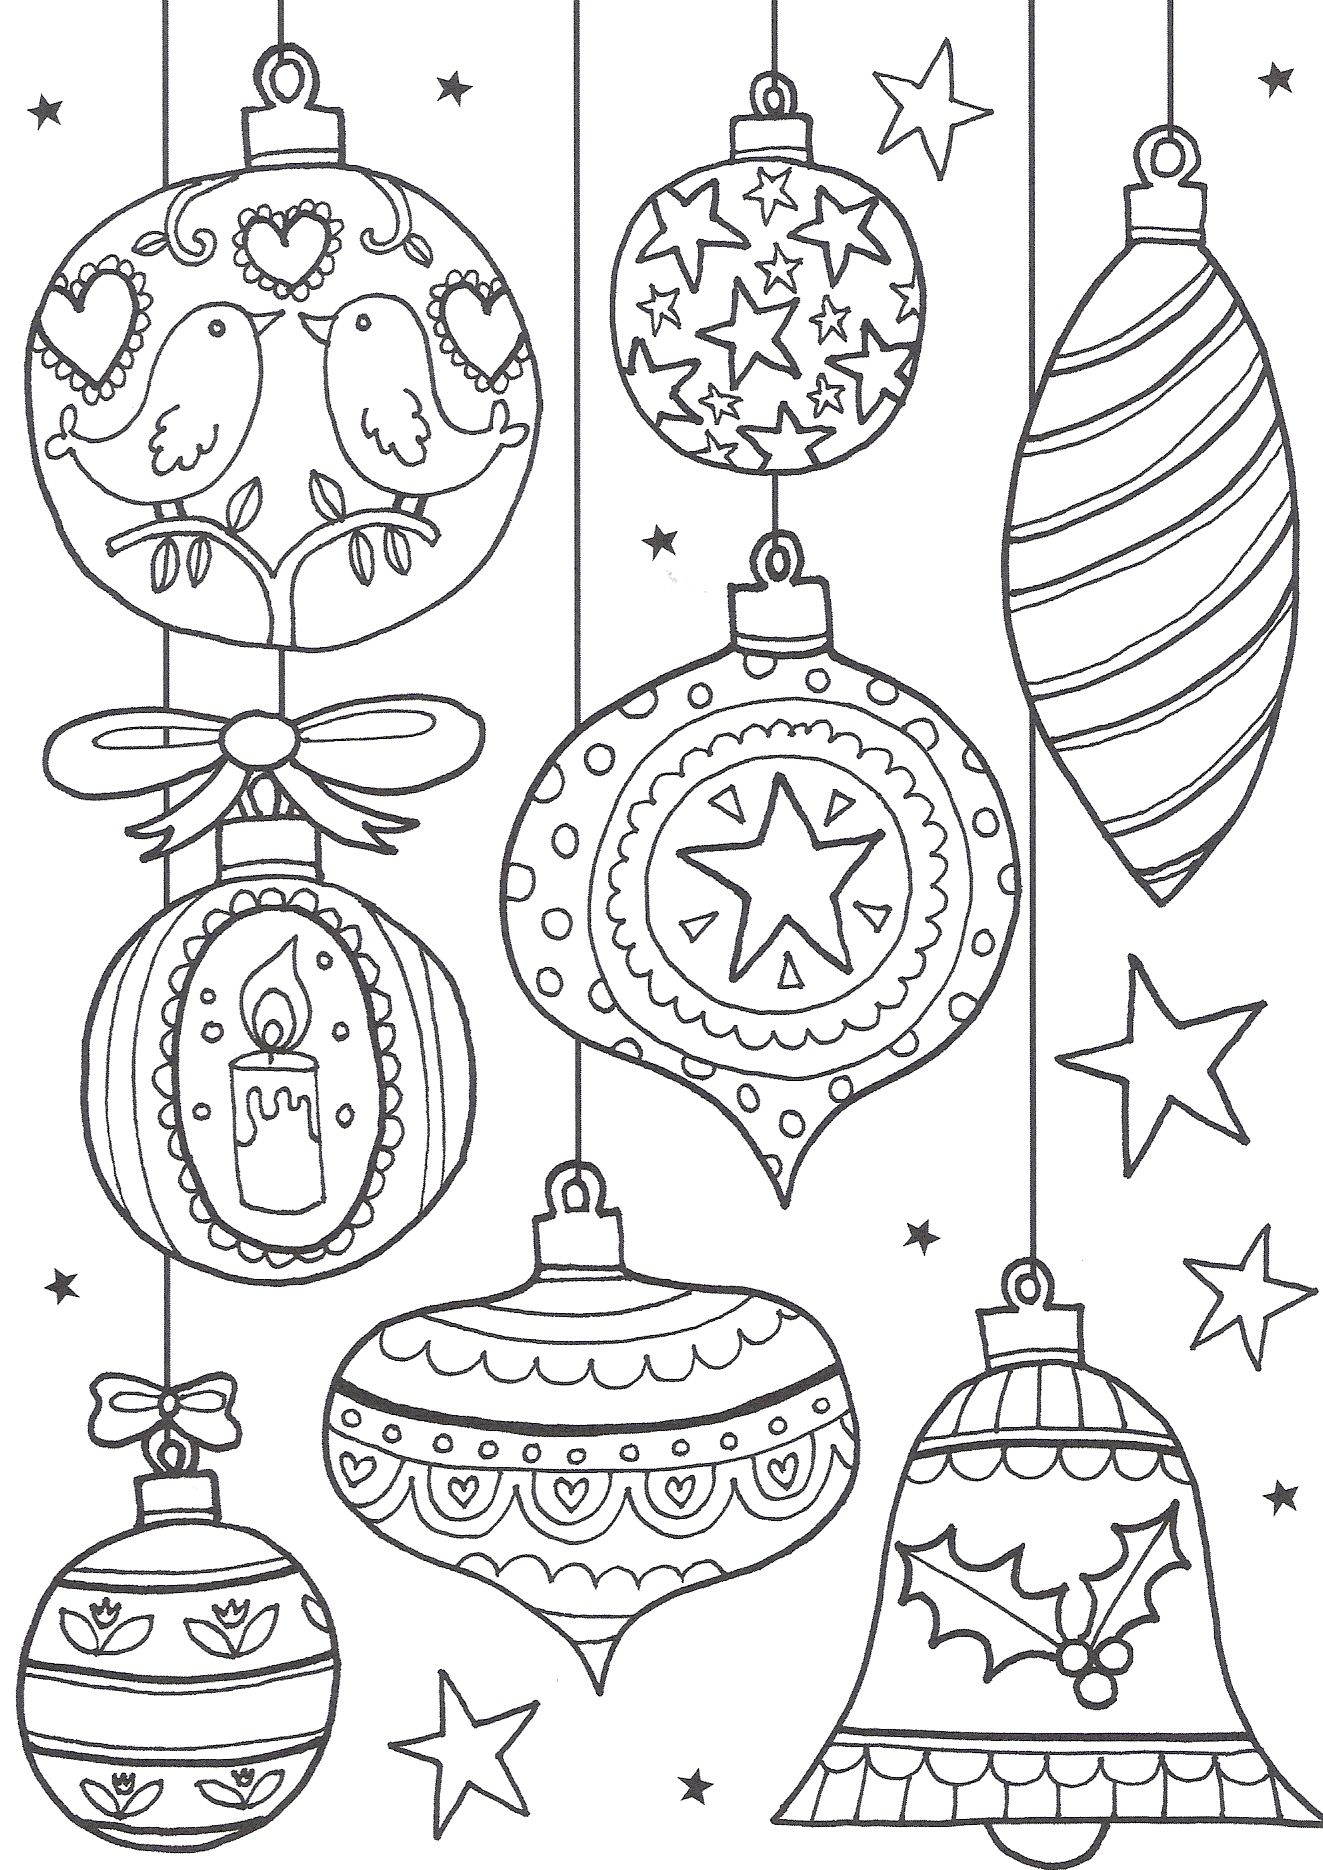 Christmas Coloring Pages Adults Free With Colouring For The Ultimate Roundup